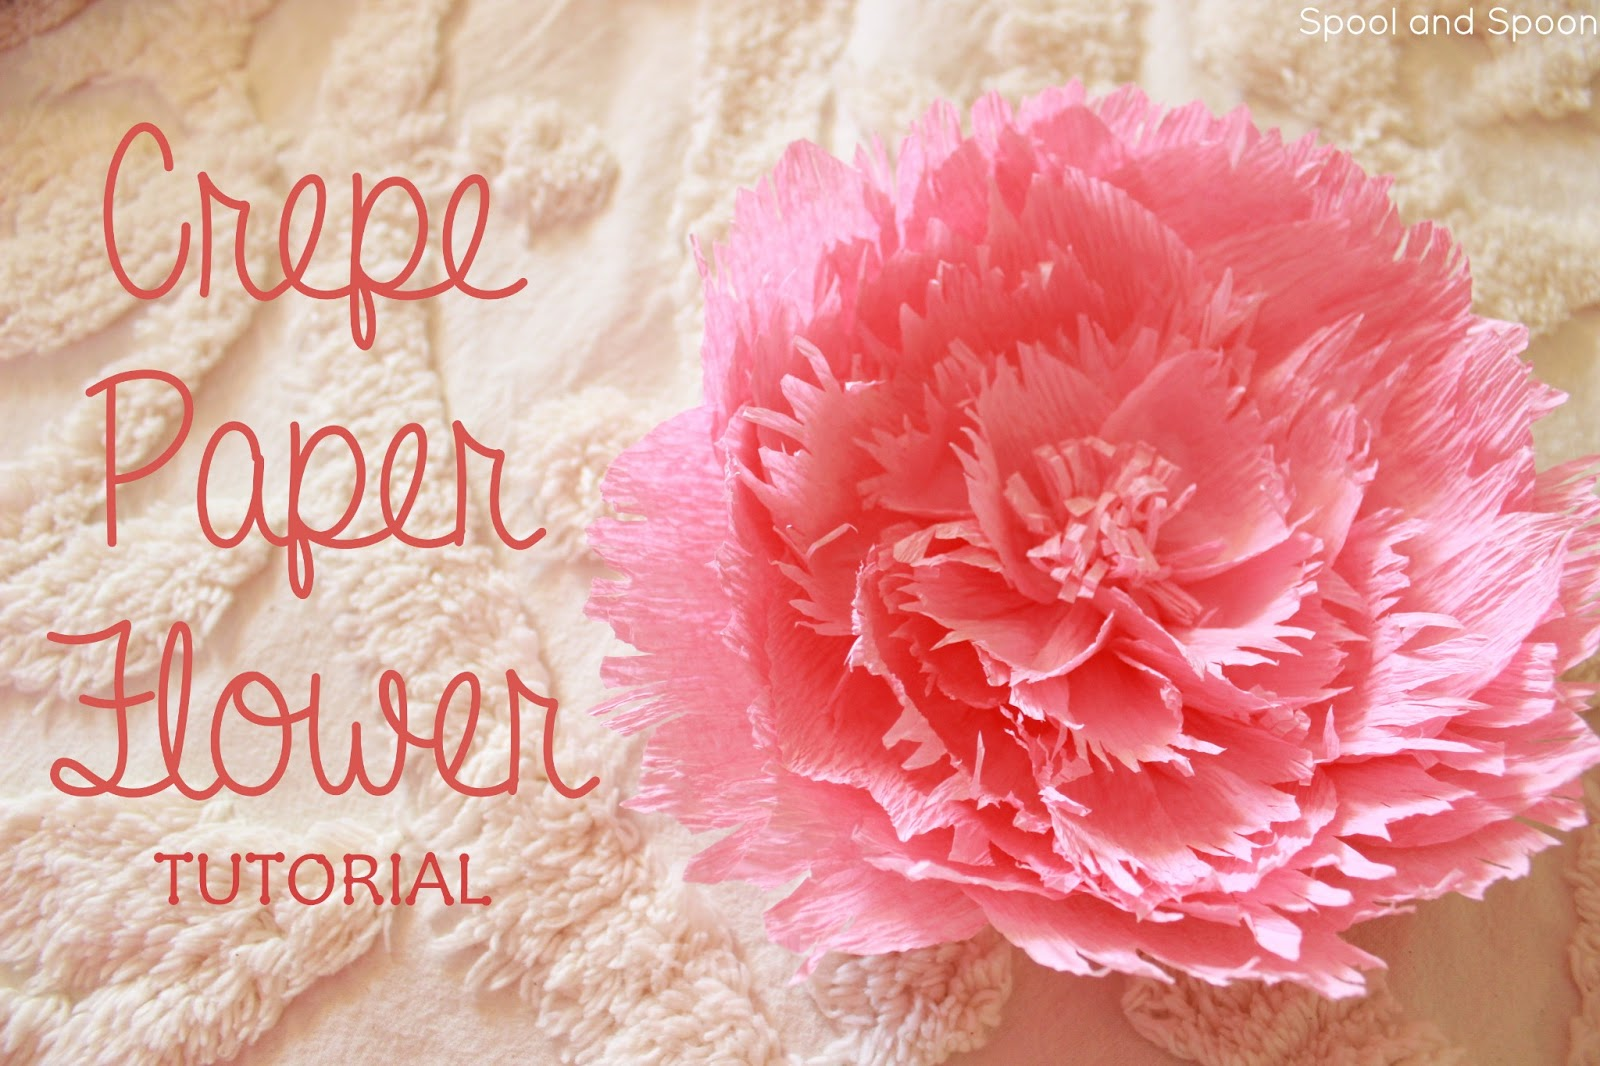 Spool and spoon paper flower gift topper tutorial crepe paper flower tutorial from spool and spoon perfect alternative to a bow mightylinksfo Gallery